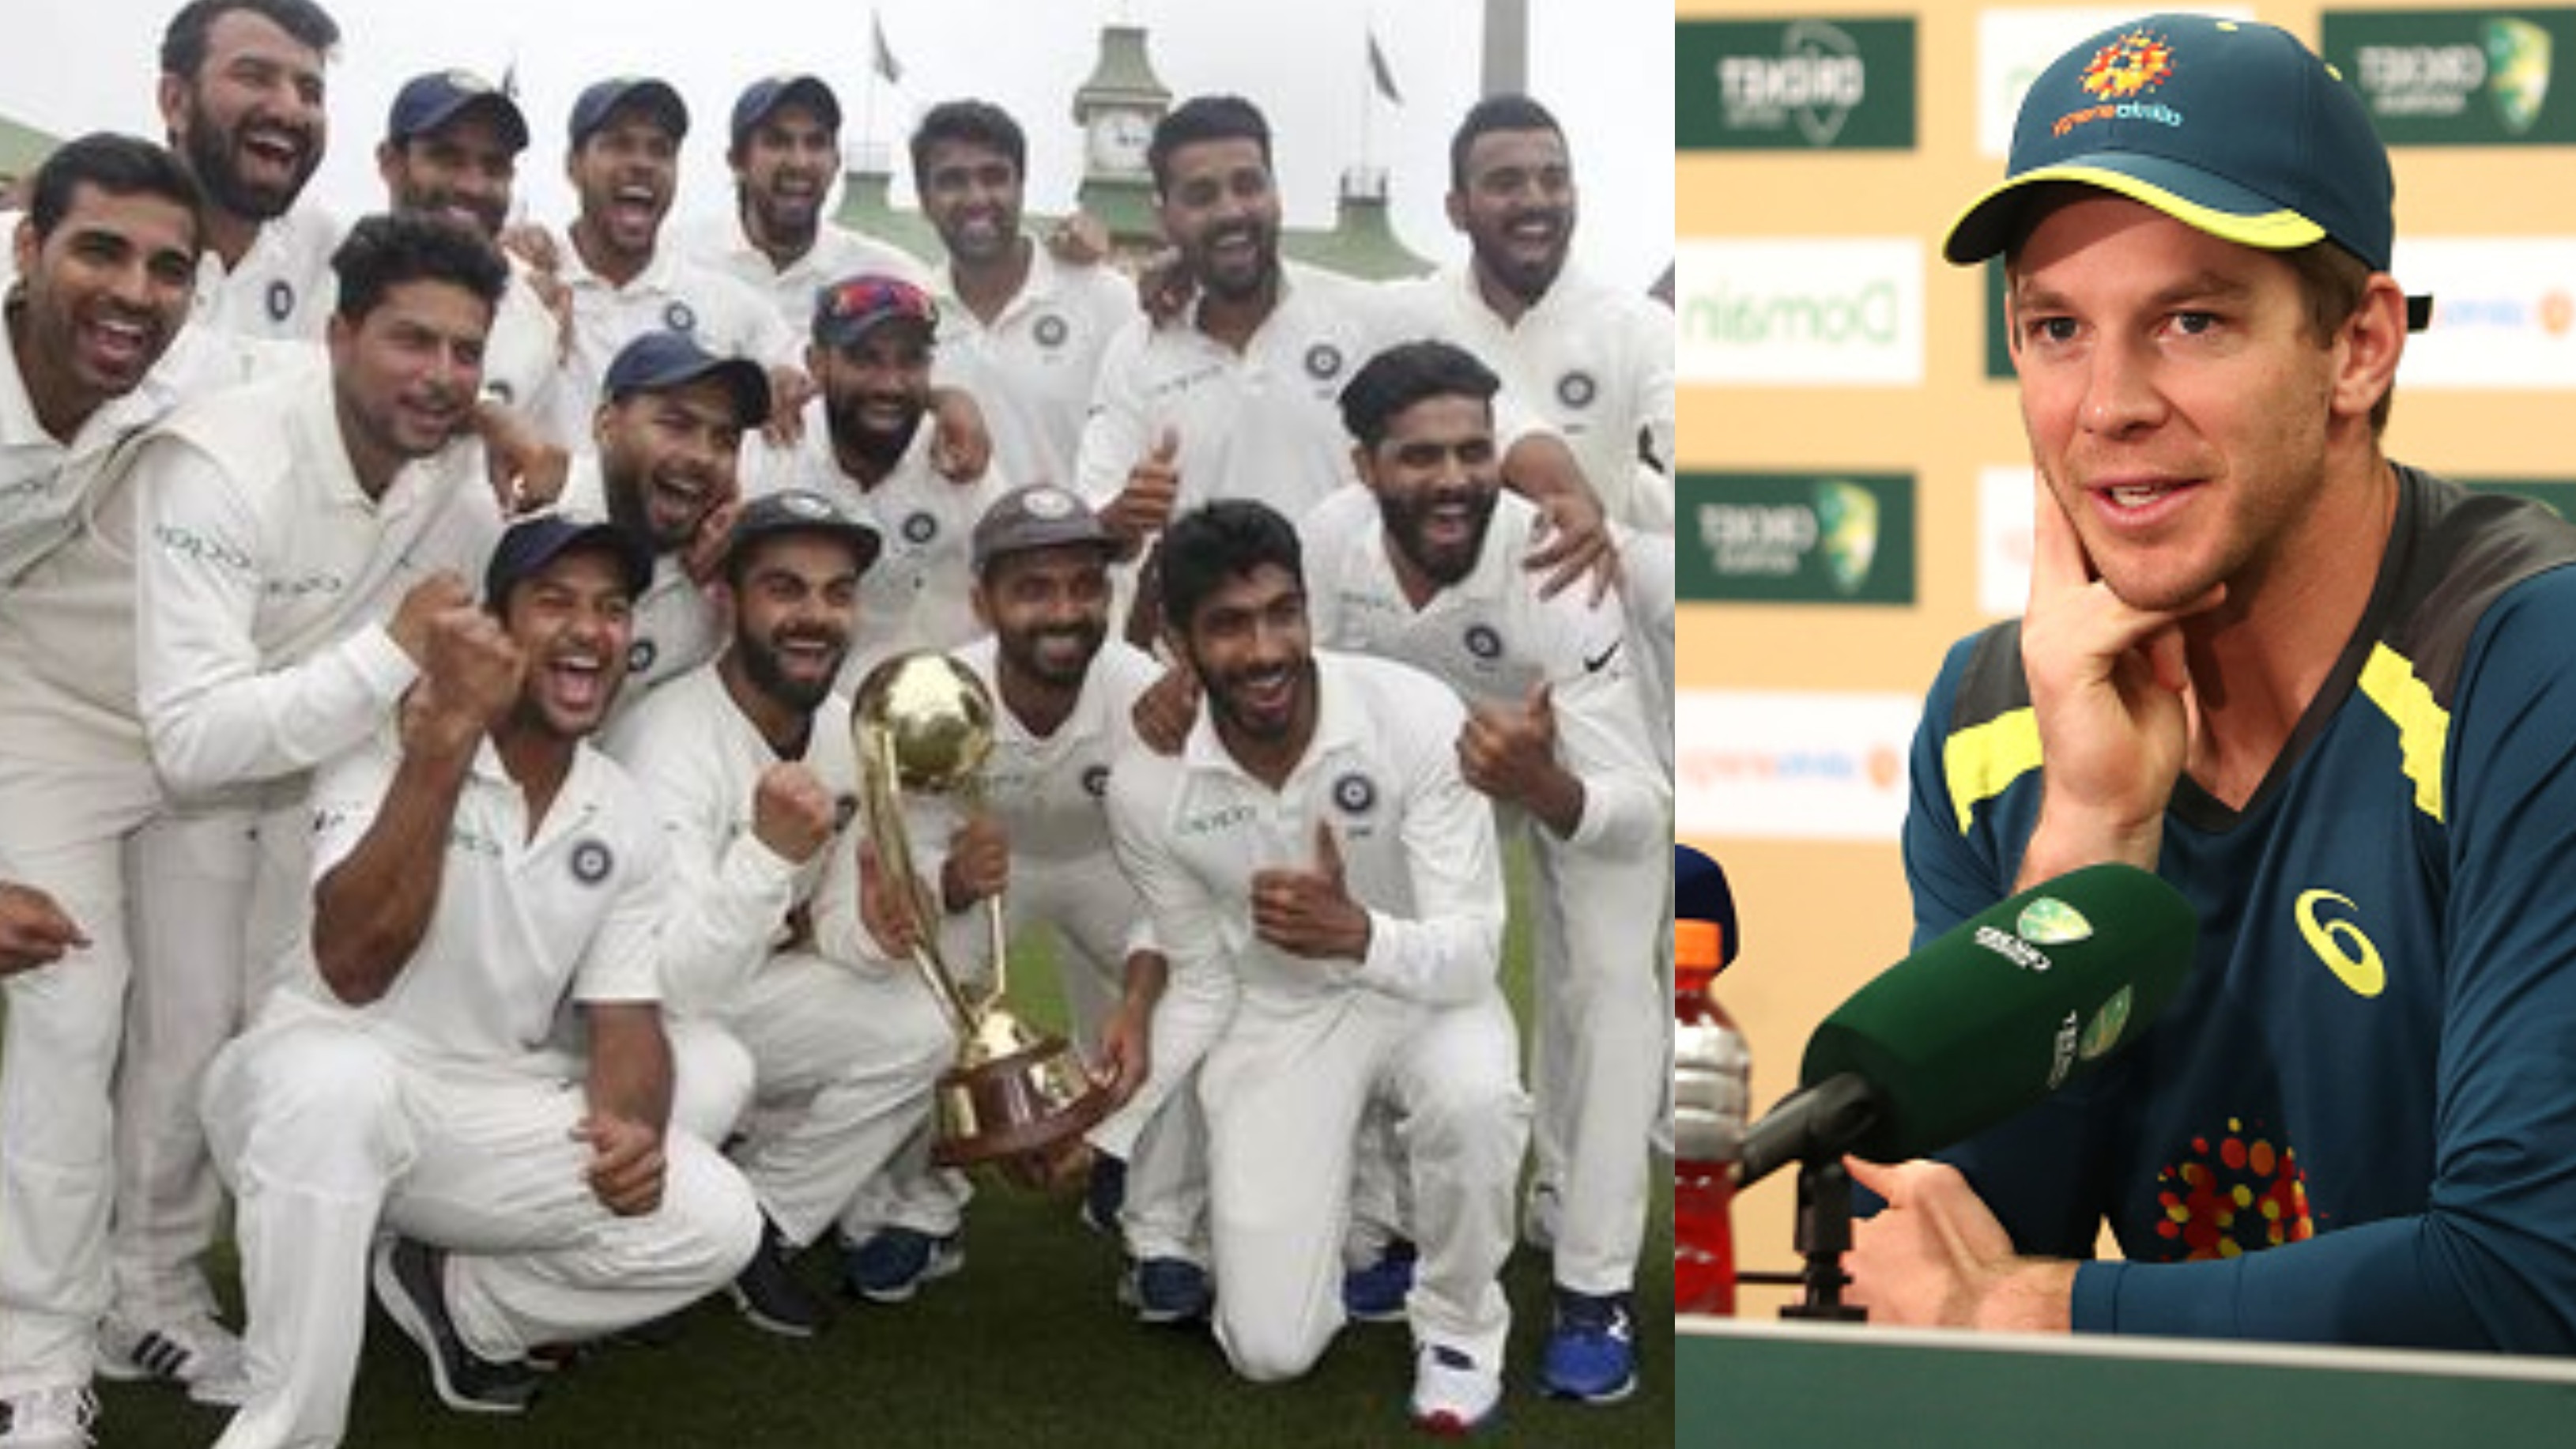 AUS v IND 2018-19: Tim Paine congratulates Virat Kohli and Ravi Shastri on historic Test series win